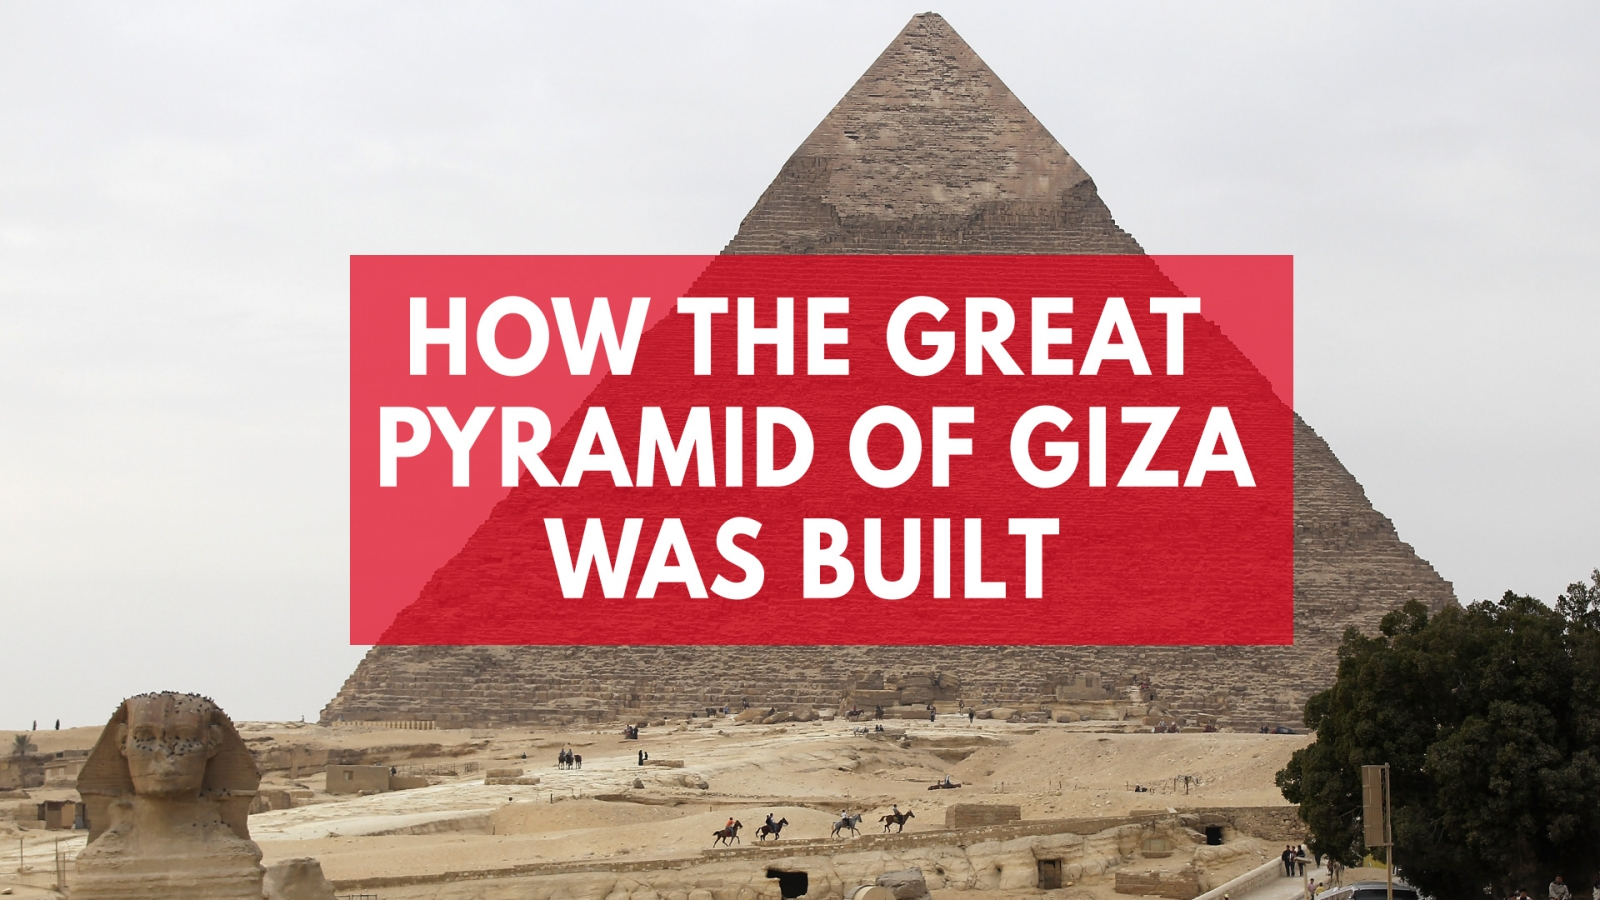 secret-of-how-great-pyramid-of-giza-was-built-revealed